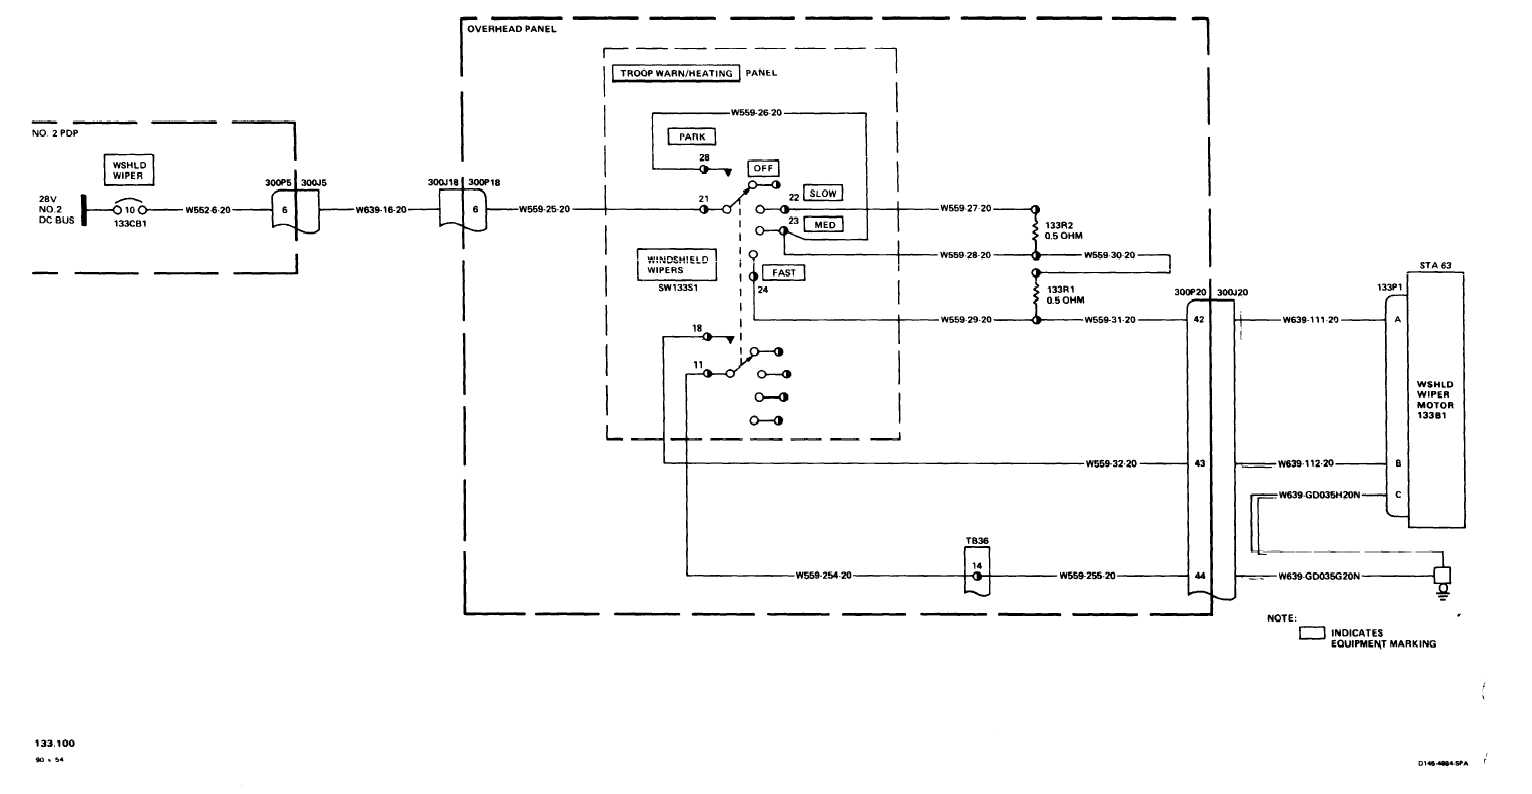 cole hersee wiper switch wiring diagram wiring diagram TM 55 1520 240 T  3_590_1?resize=665%2C345 cole hersee wiper switch